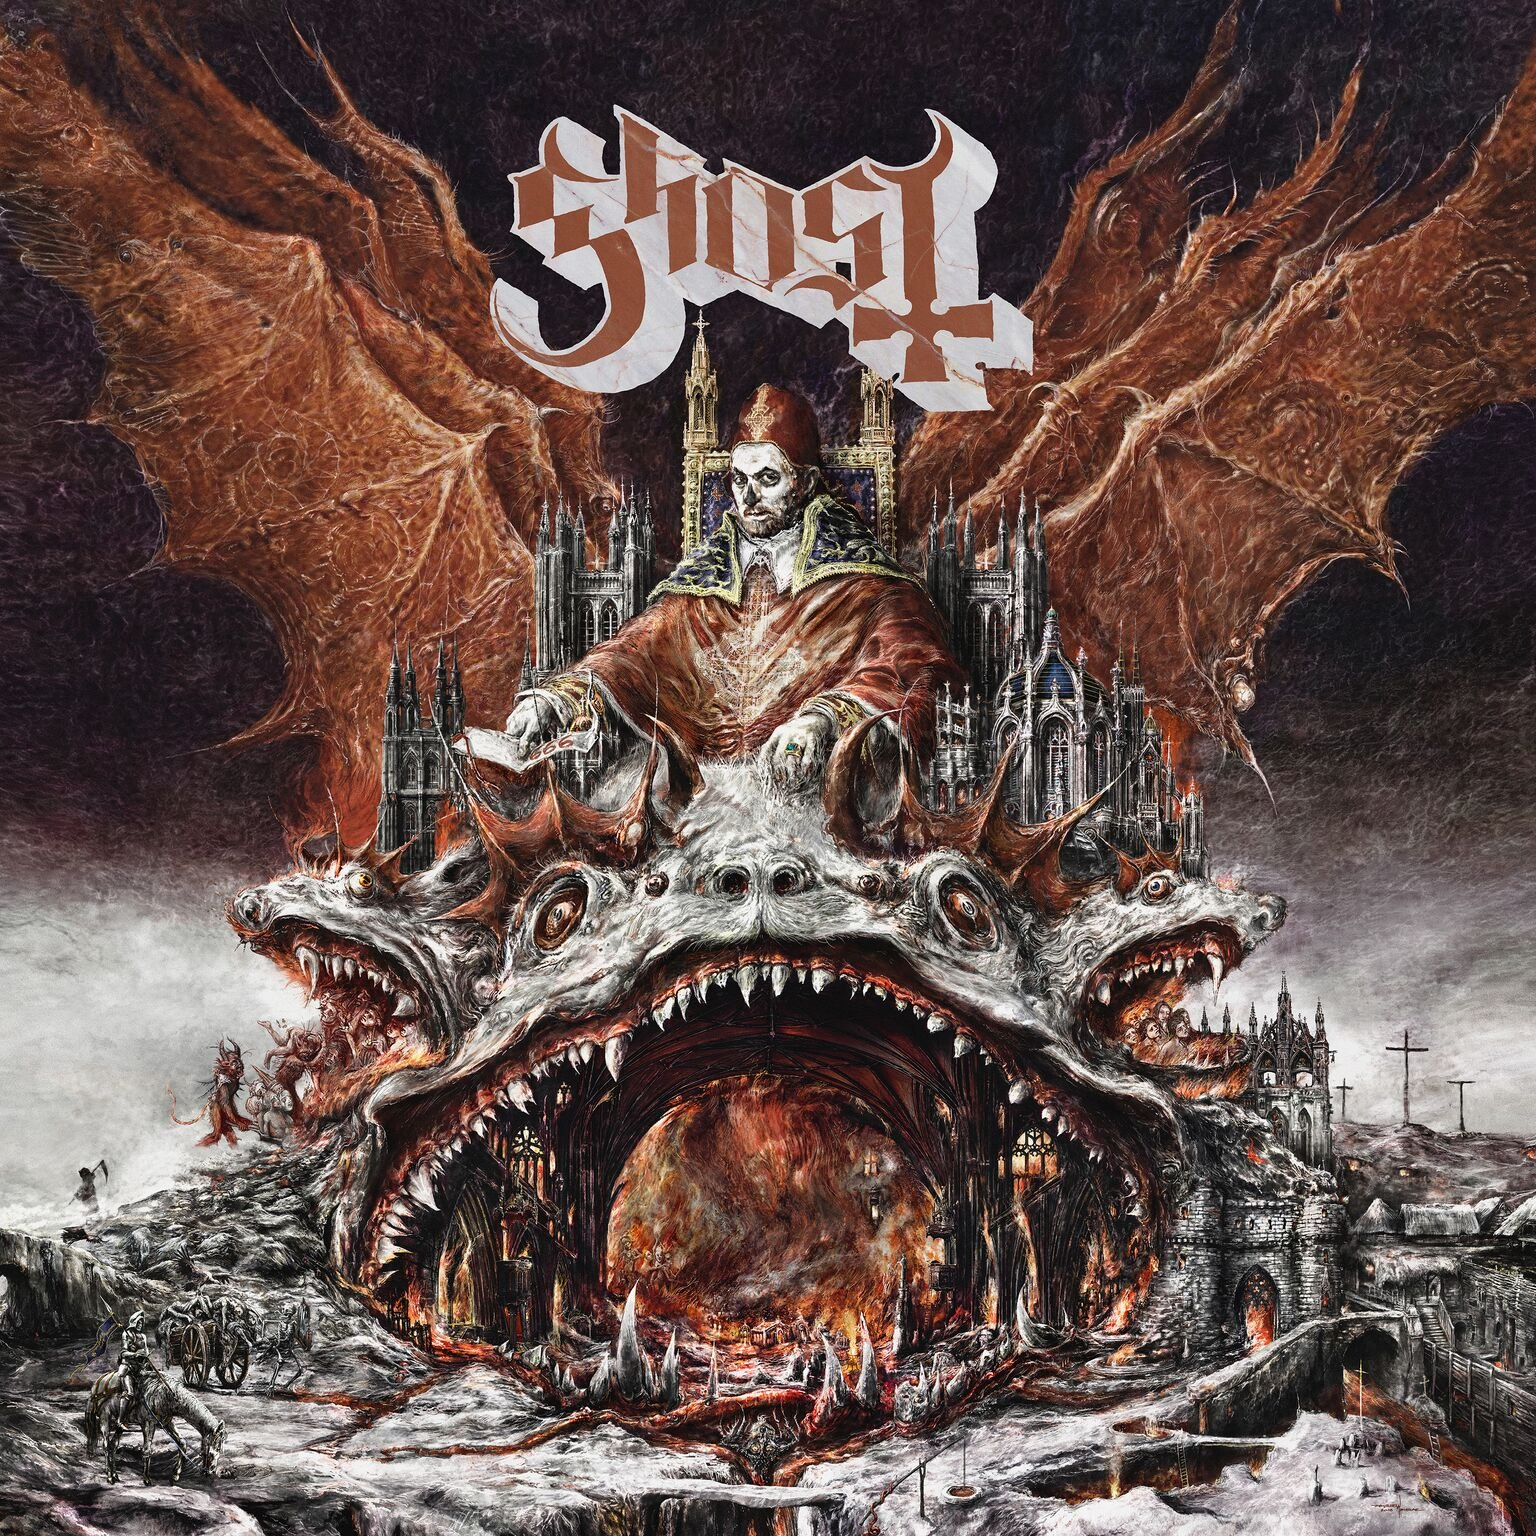 Cassette : The Ghost - Prequelle (Cassette)